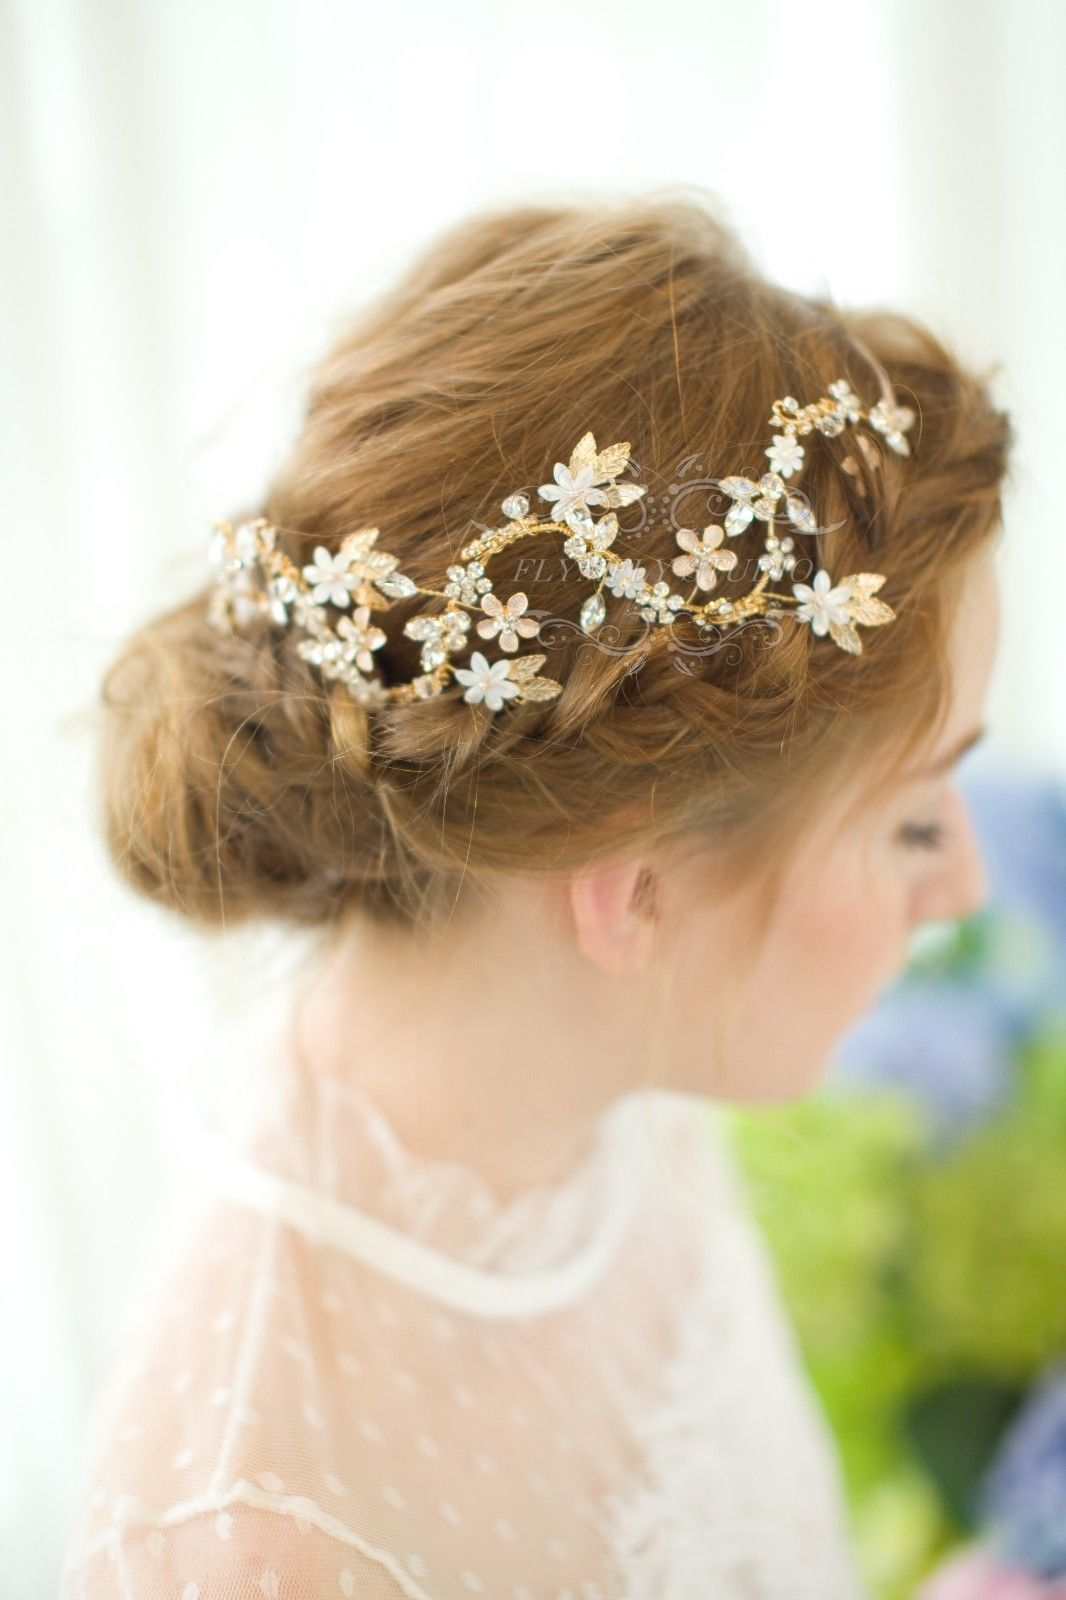 Find a great selection of wedding hair accessories at spanarpatri.ml Shop for elegant headbands, head wraps, flower hair clips & more. Free shipping & returns.